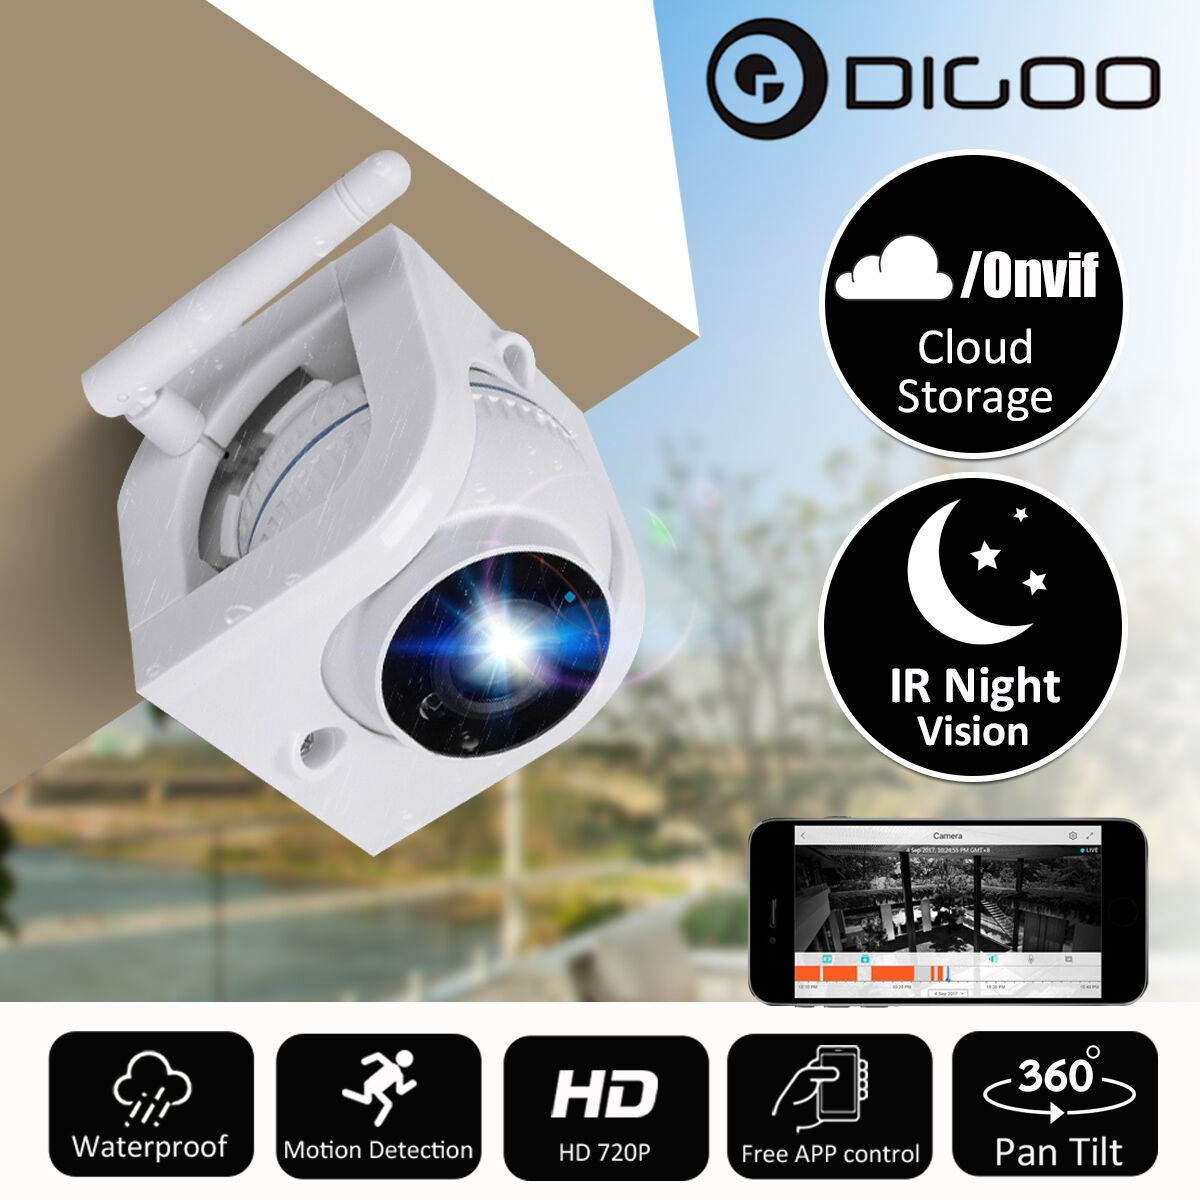 Digoo DG-W02f HD 720P Wireless Cloud IP Camera Waterproof Outdoor Home Security WiFi Surveillance Night Vision CCTV Baby Monitor